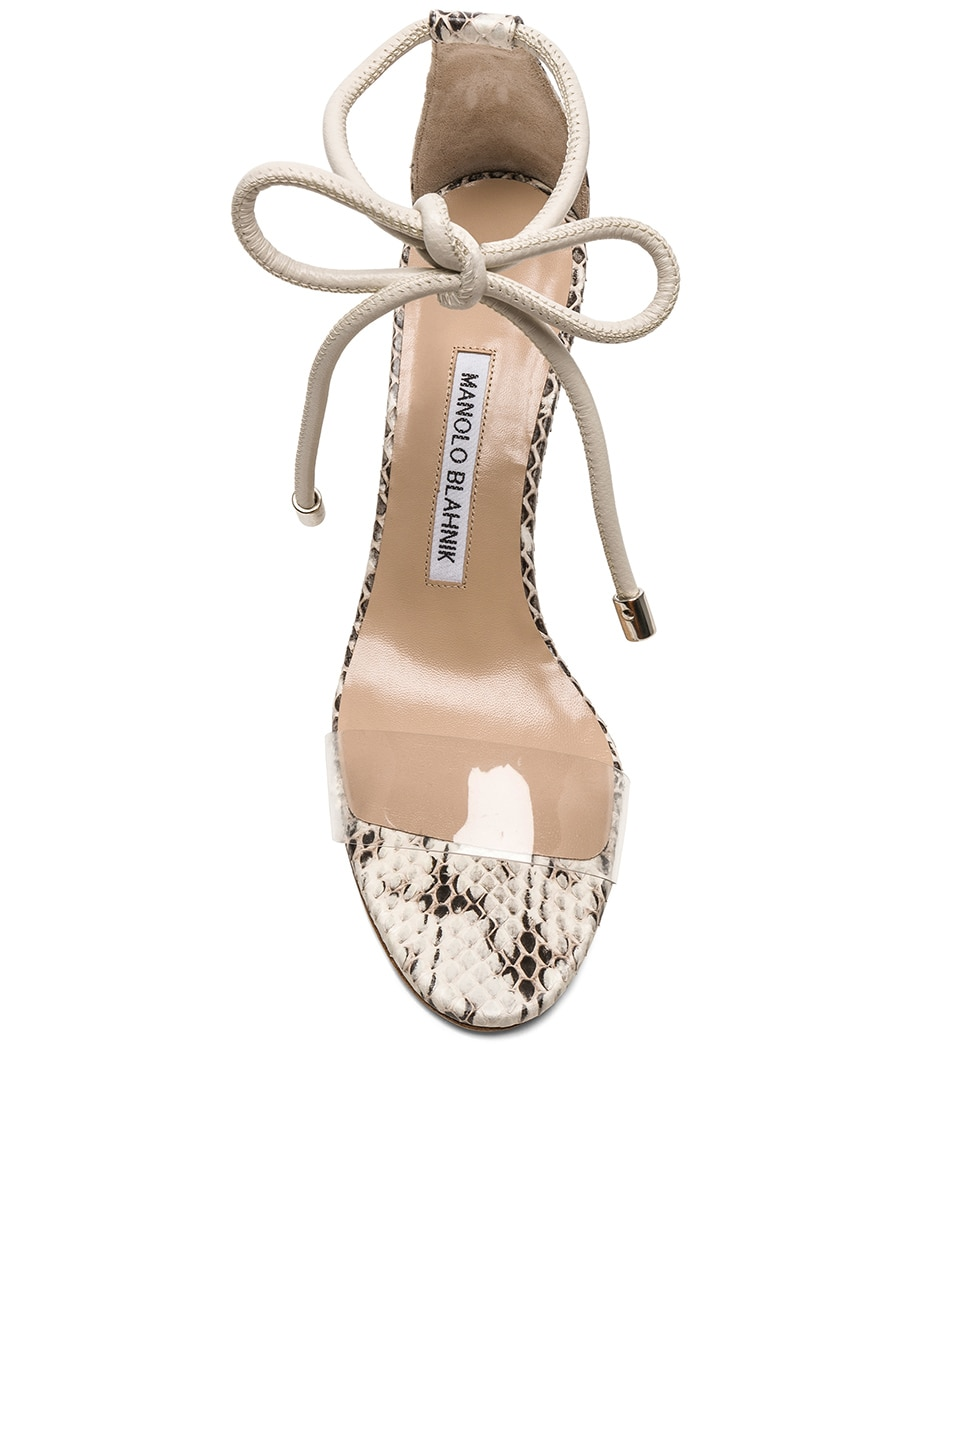 Image 4 of Manolo Blahnik Estro 70 Sandals in White & Black Natural Watersnake